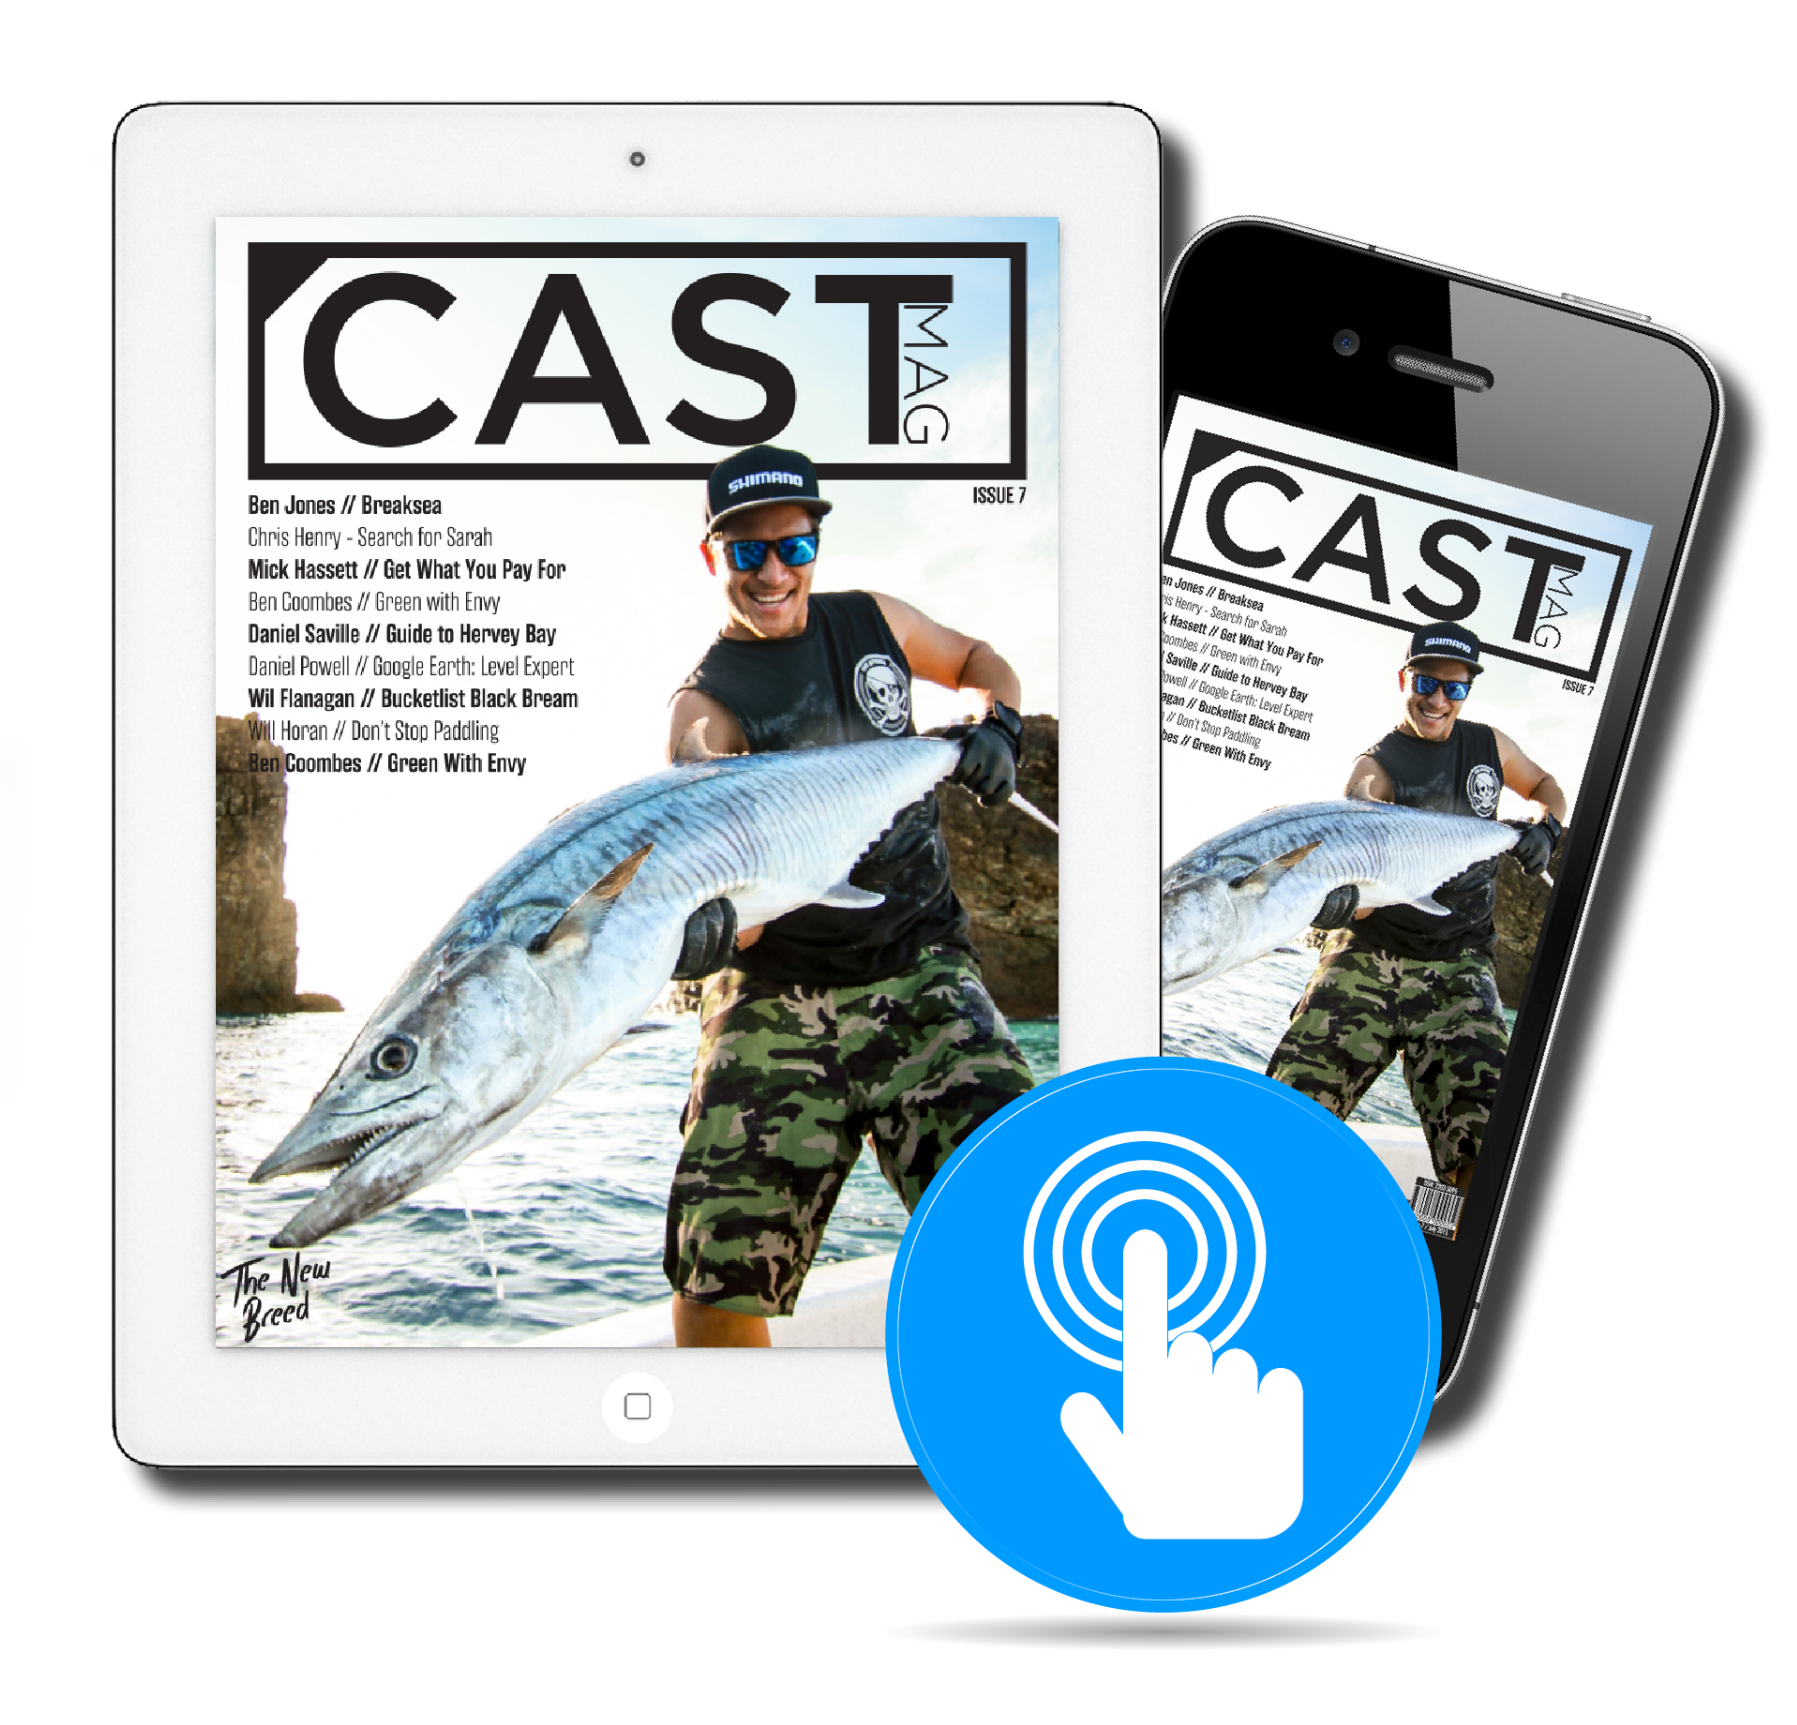 Cast Magazine - Yearly Subscription (Online Magazine Issues 14-17)